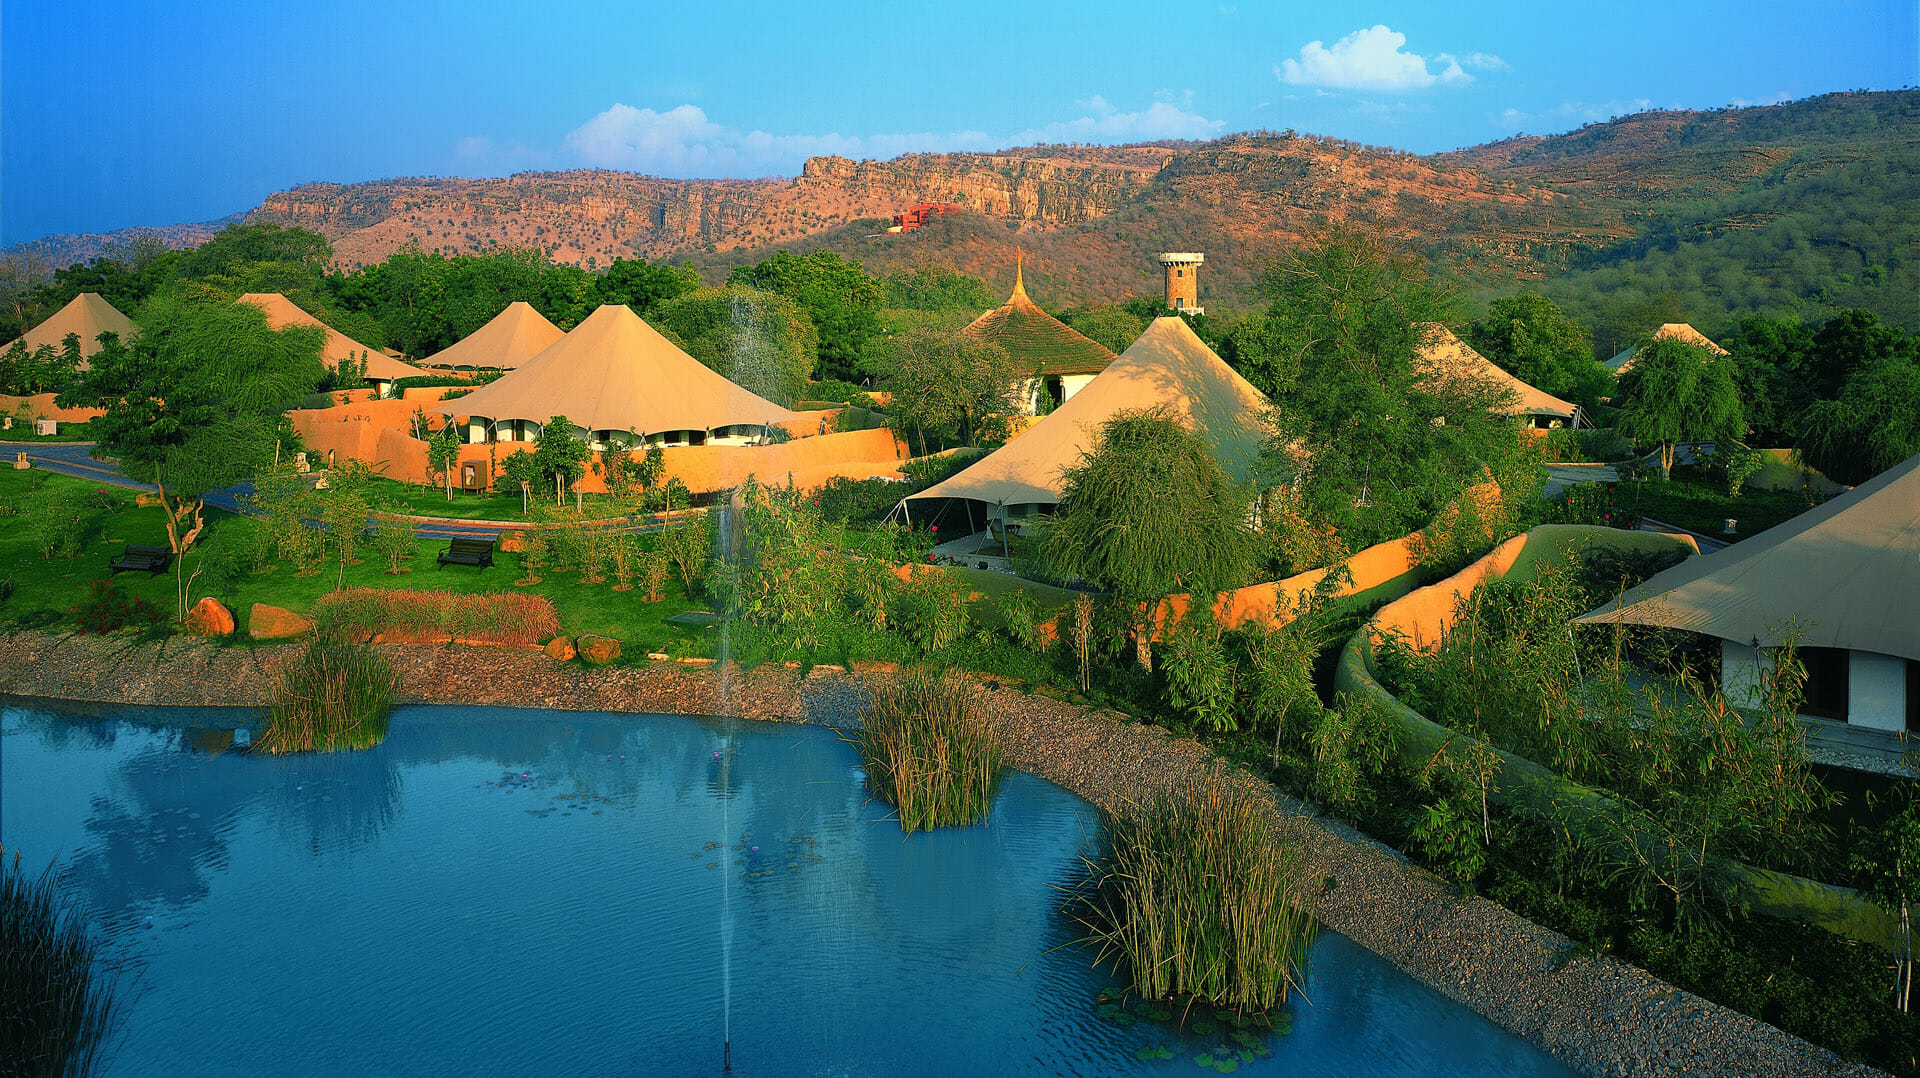 Oberoi Vanyavilas - Ranthambore National Park, India